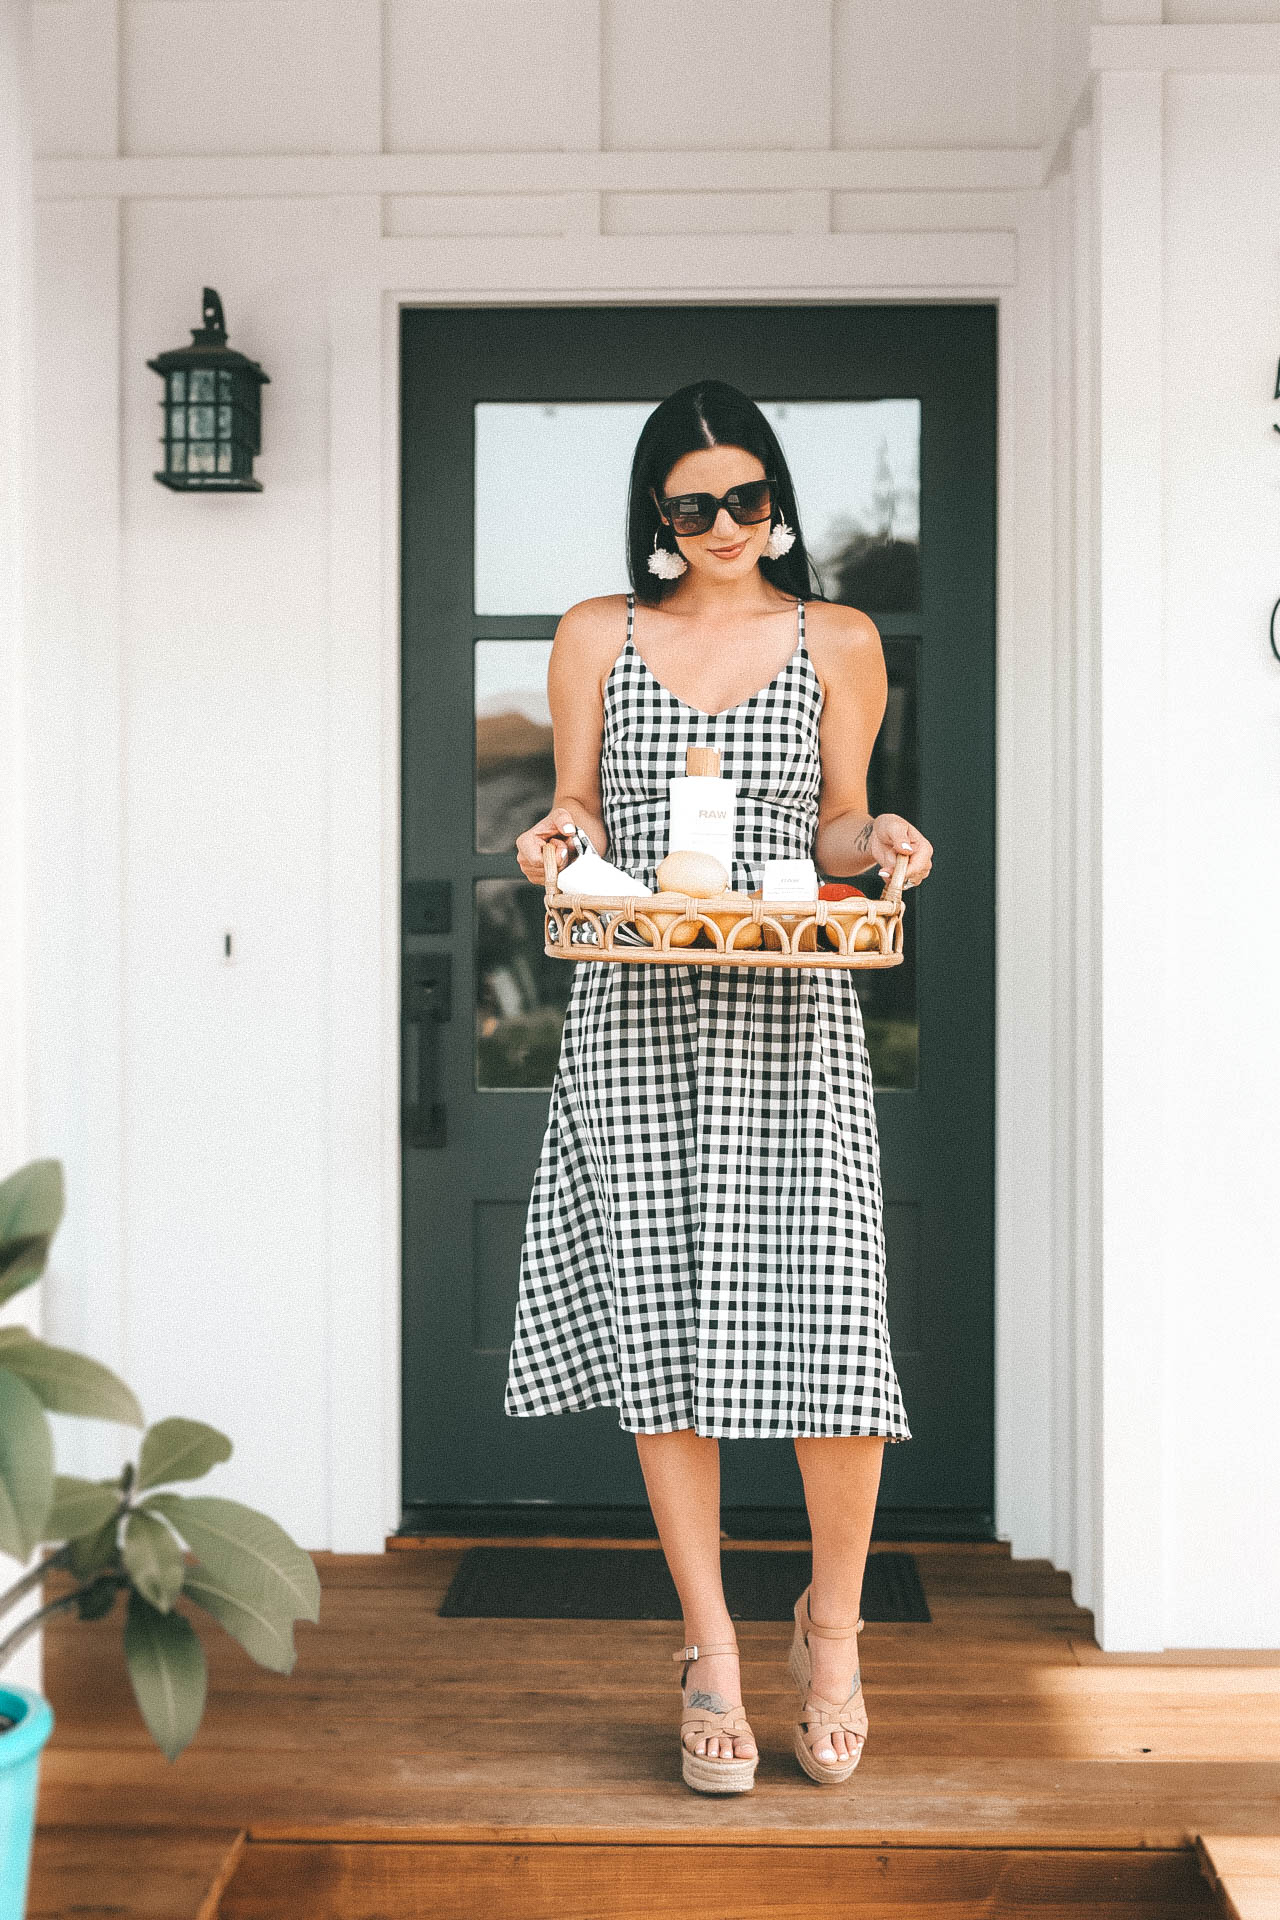 DTKAustin shares why it is so important for your health to use all natural beauty and skincare products like Raw Sugar Living. | summer fashion | midi dress | gingham dress || Dressed to Kill #style #fashion #outfits #summerfashion #summerstyle #mididress #gingham #dtkaustin